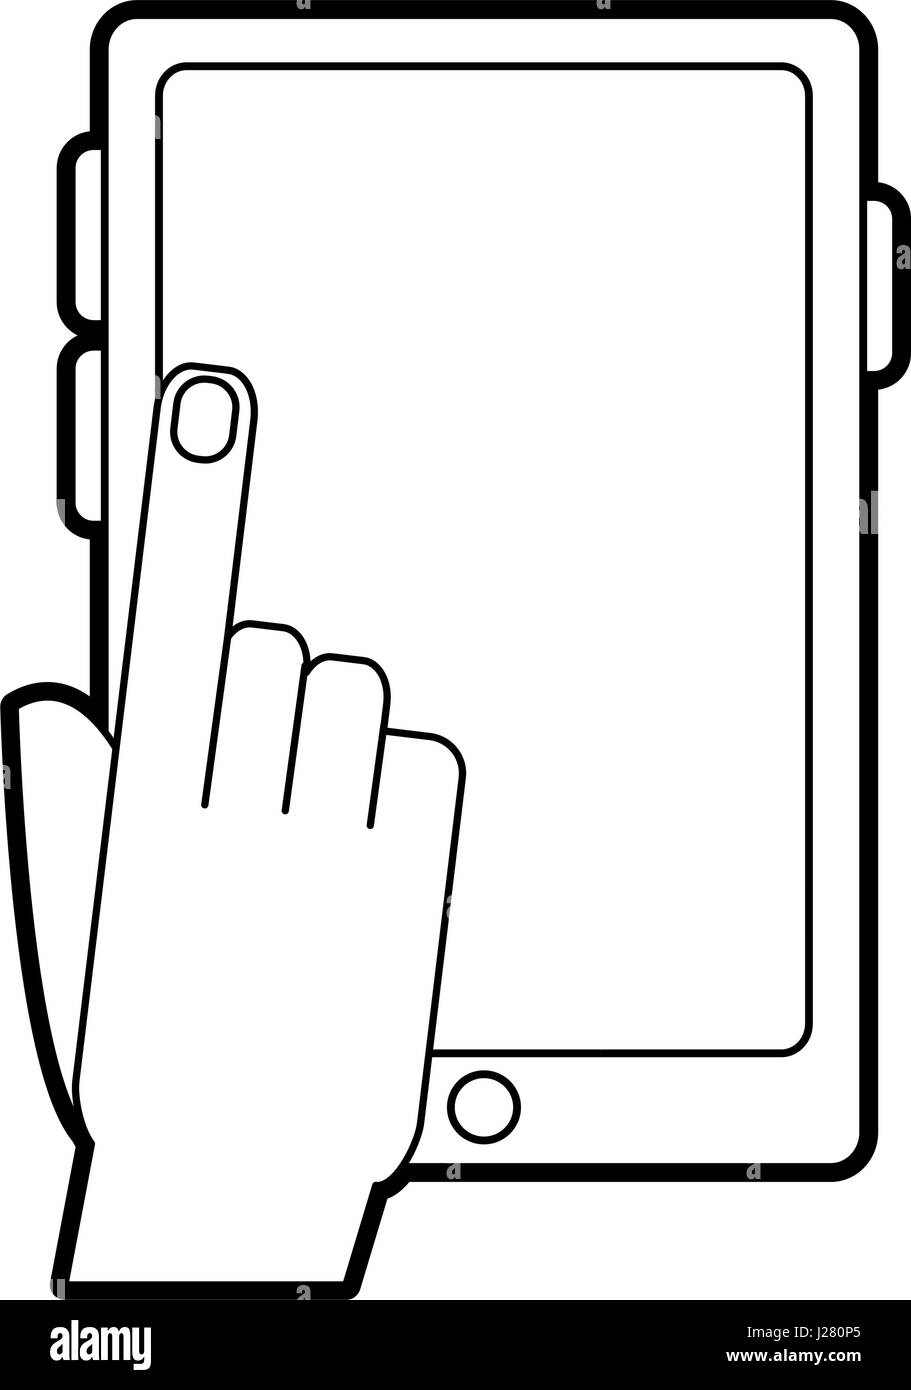 hand tapping modern cellphone with blank screen icon image  - Stock Image